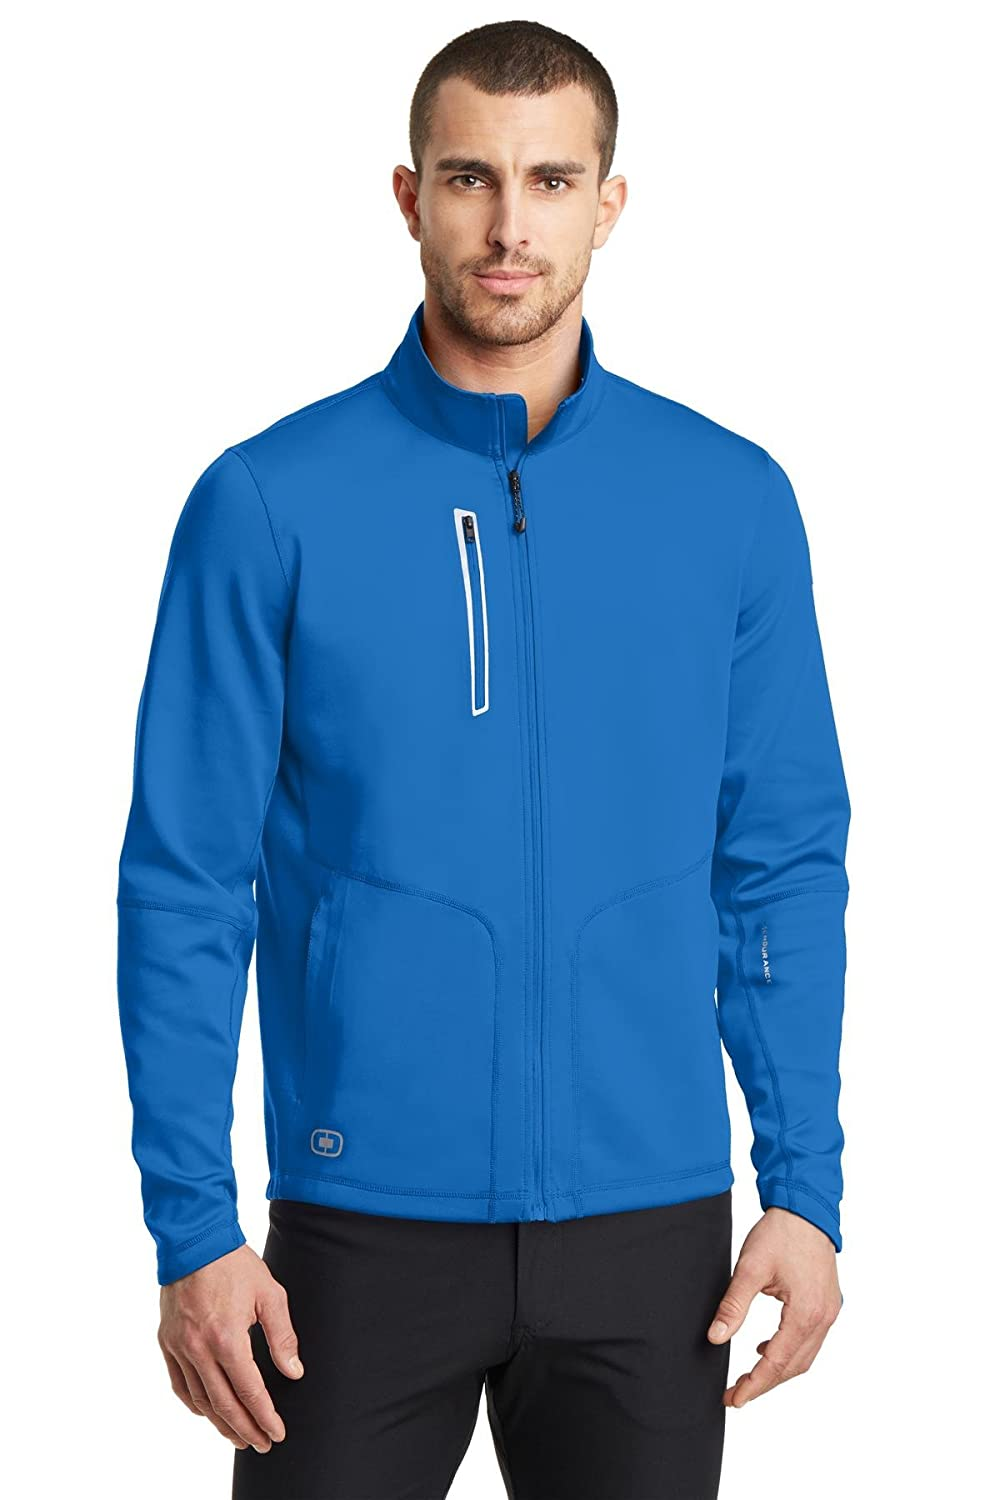 OGIO Men's Full Zip Jacket OE700